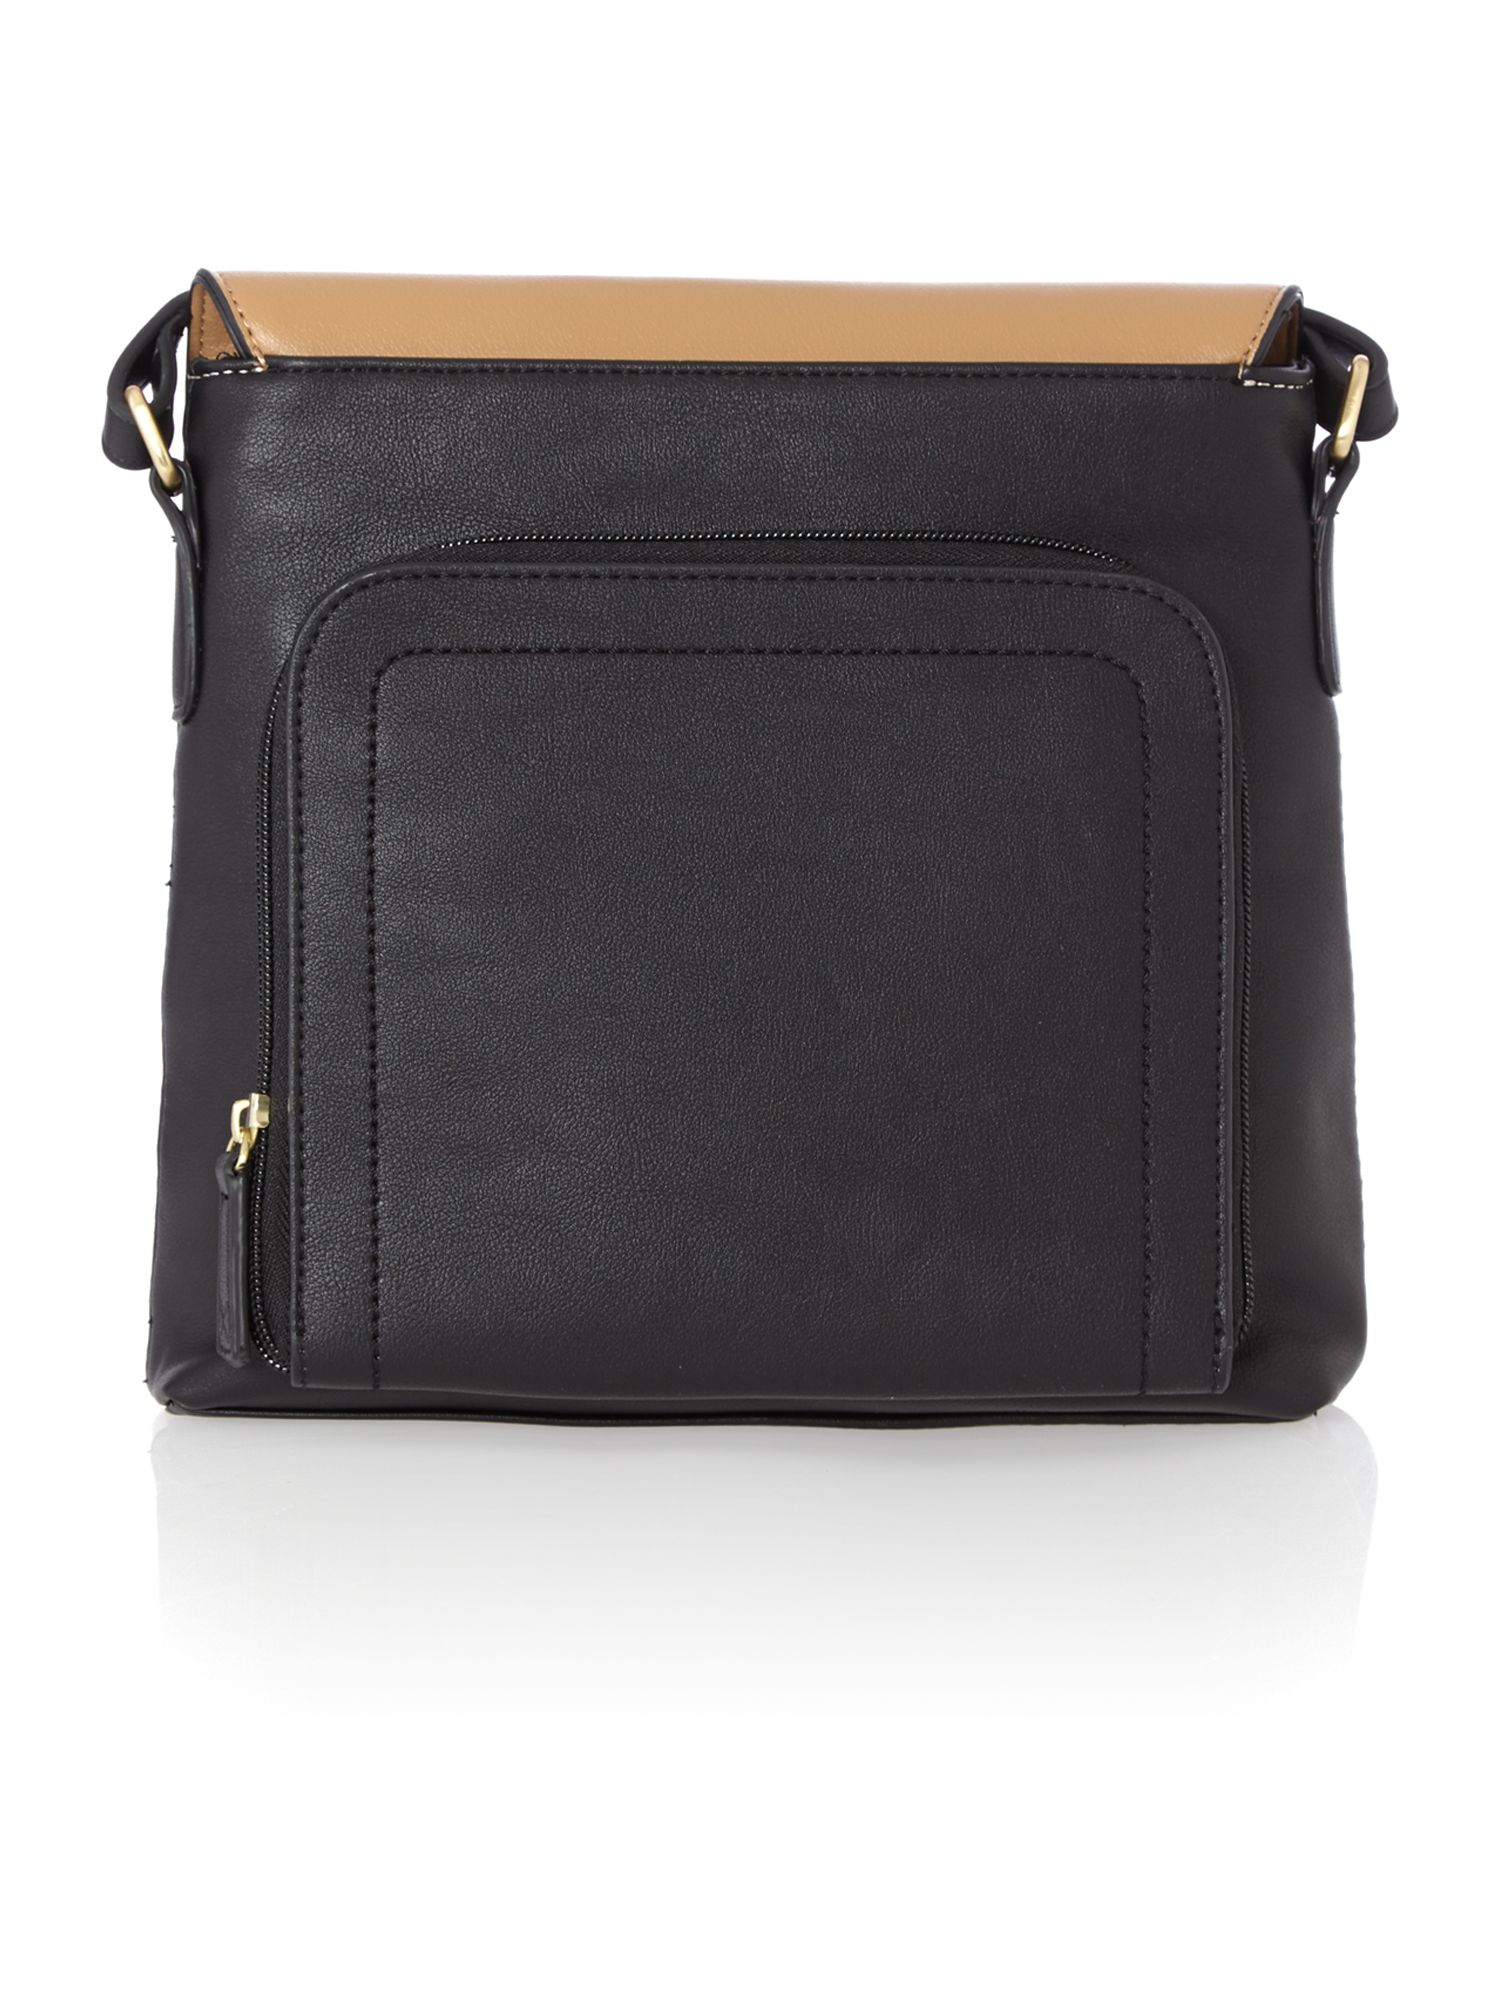 Carey monochrome cross body bag